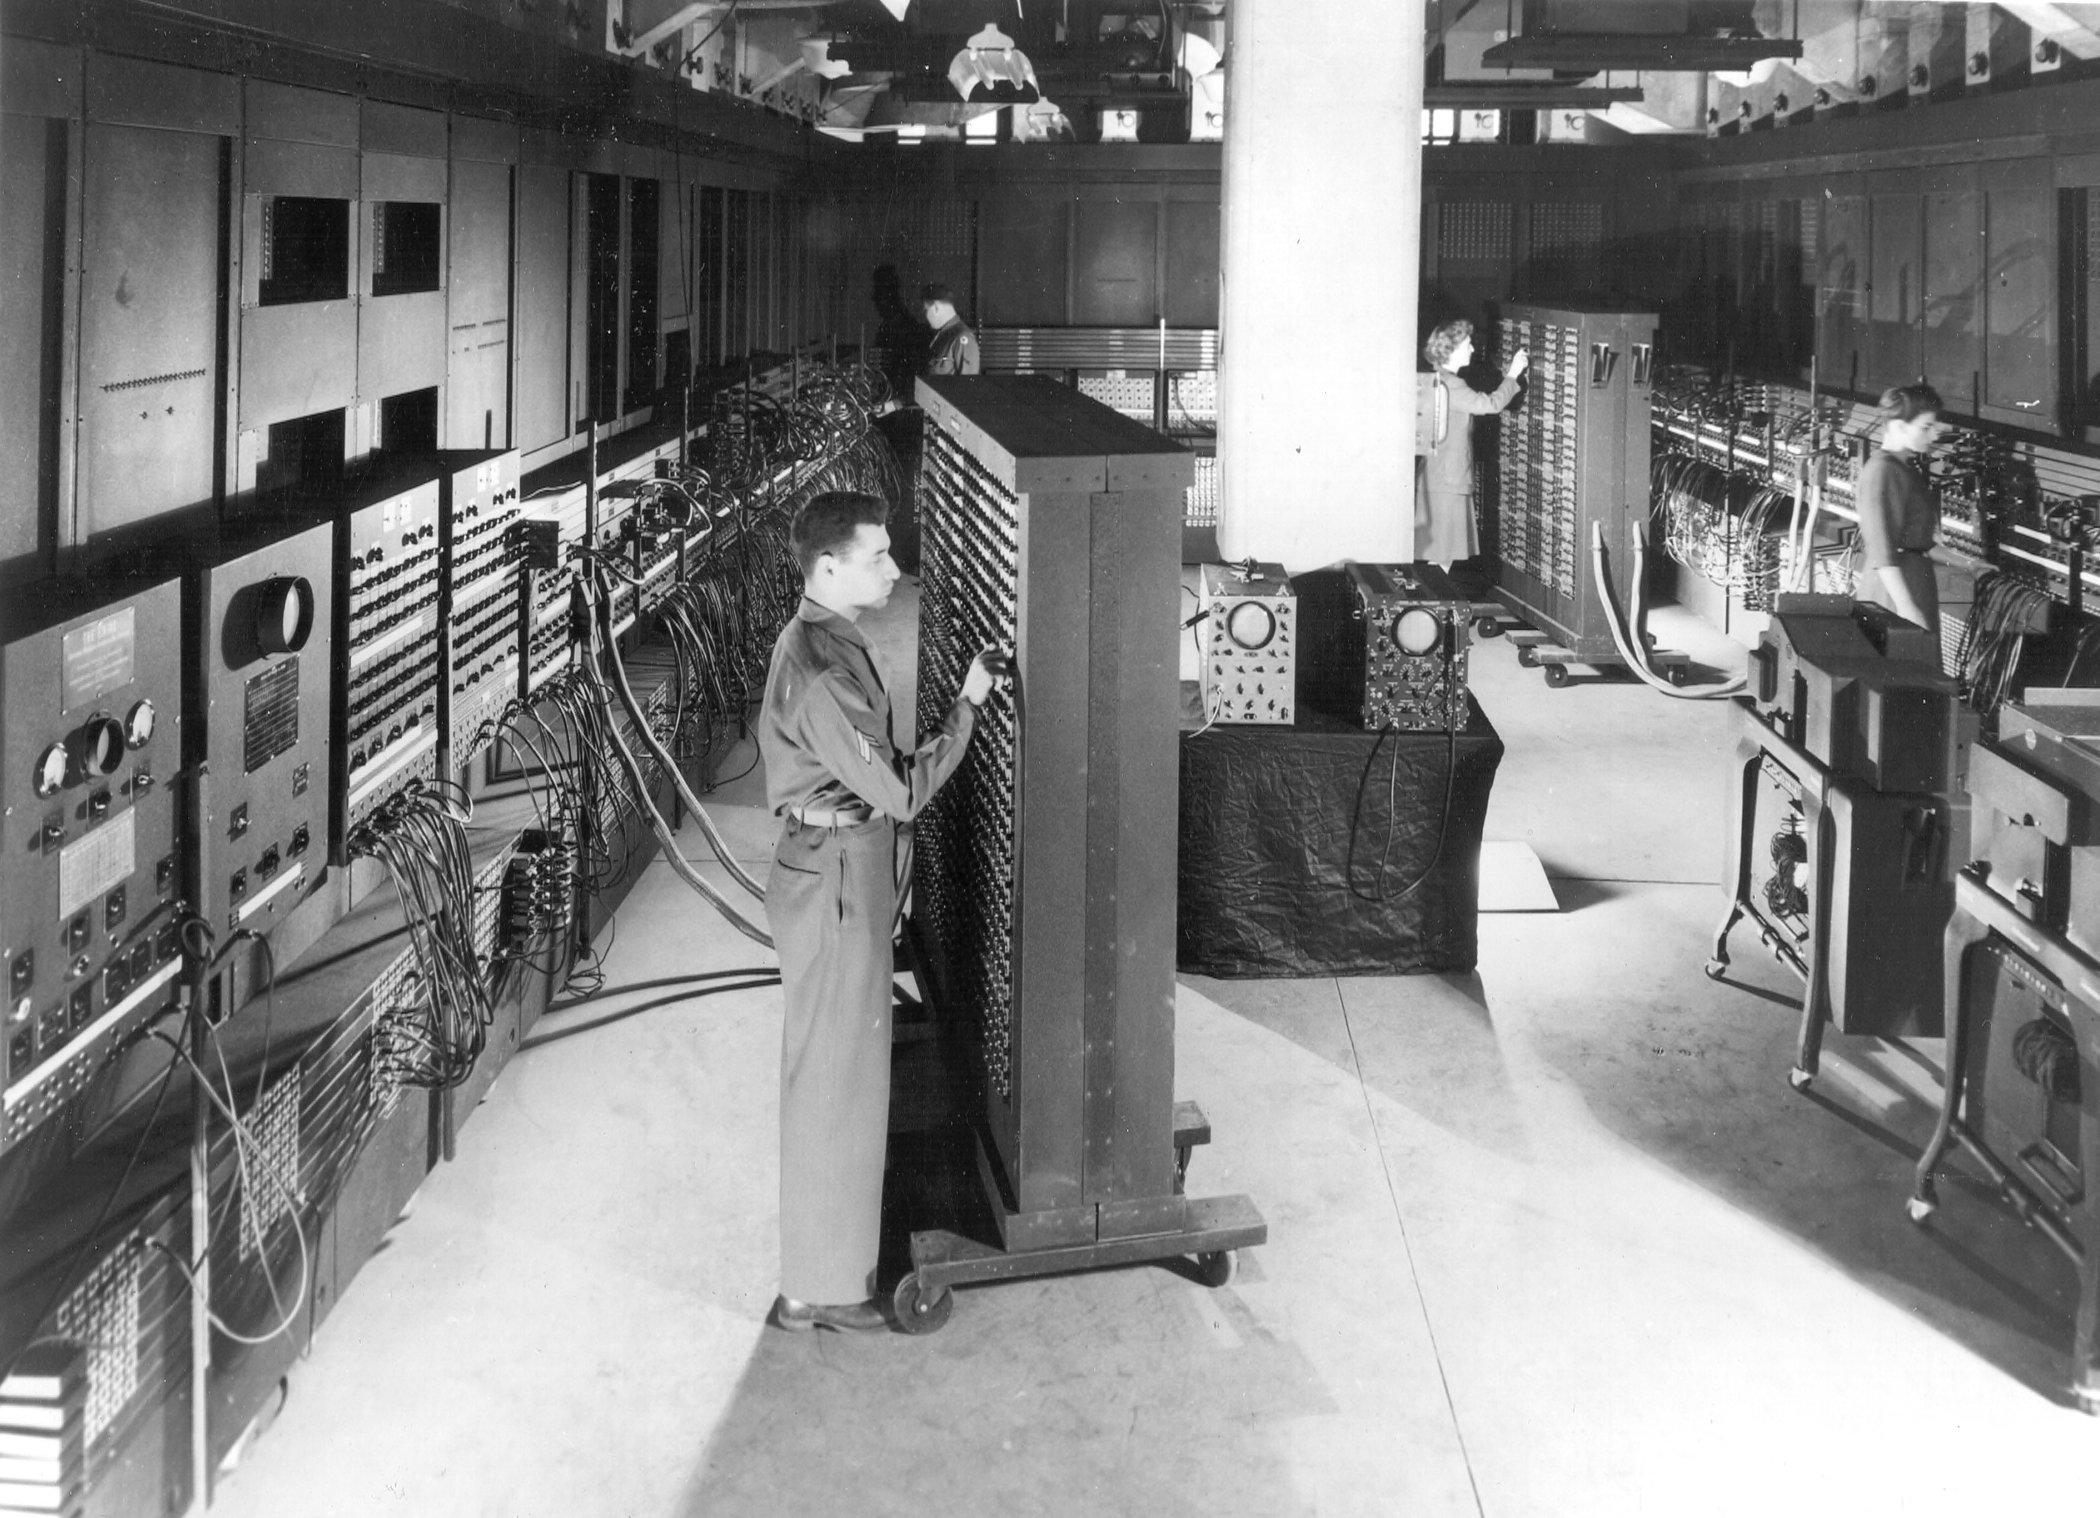 http://upload.wikimedia.org/wikipedia/commons/e/ee/Classic_shot_of_the_ENIAC_(full_resolution).jpg